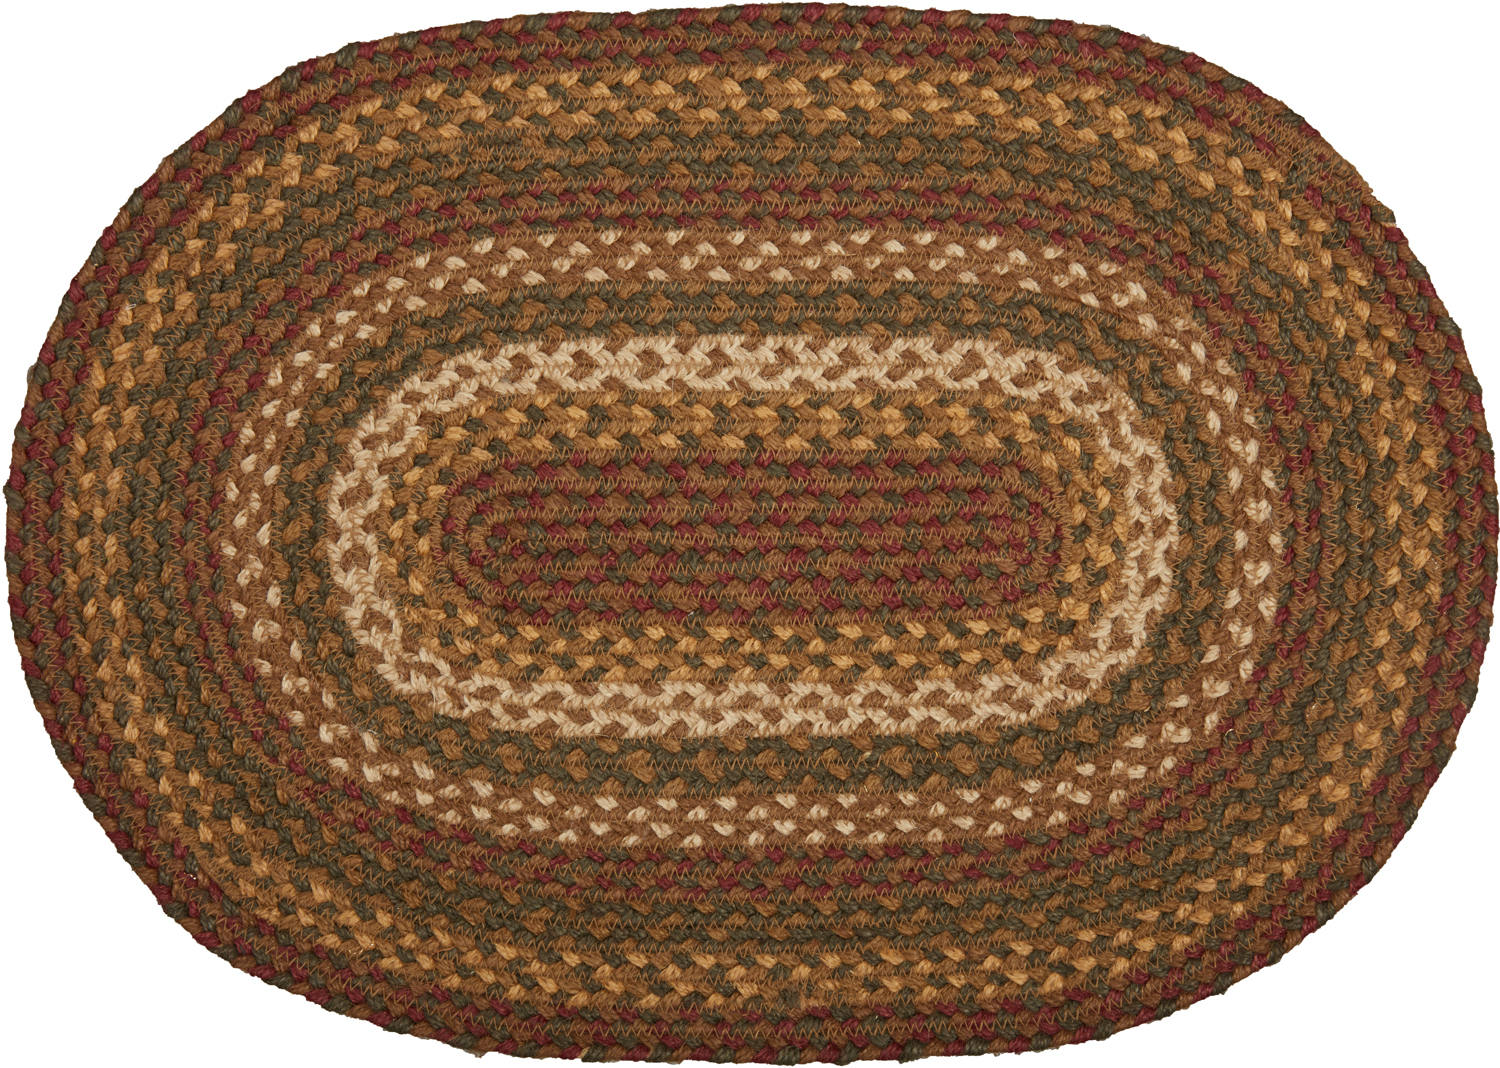 Tea-Cabin-Jute-Placemat-Set-of-6-12x18-image-2